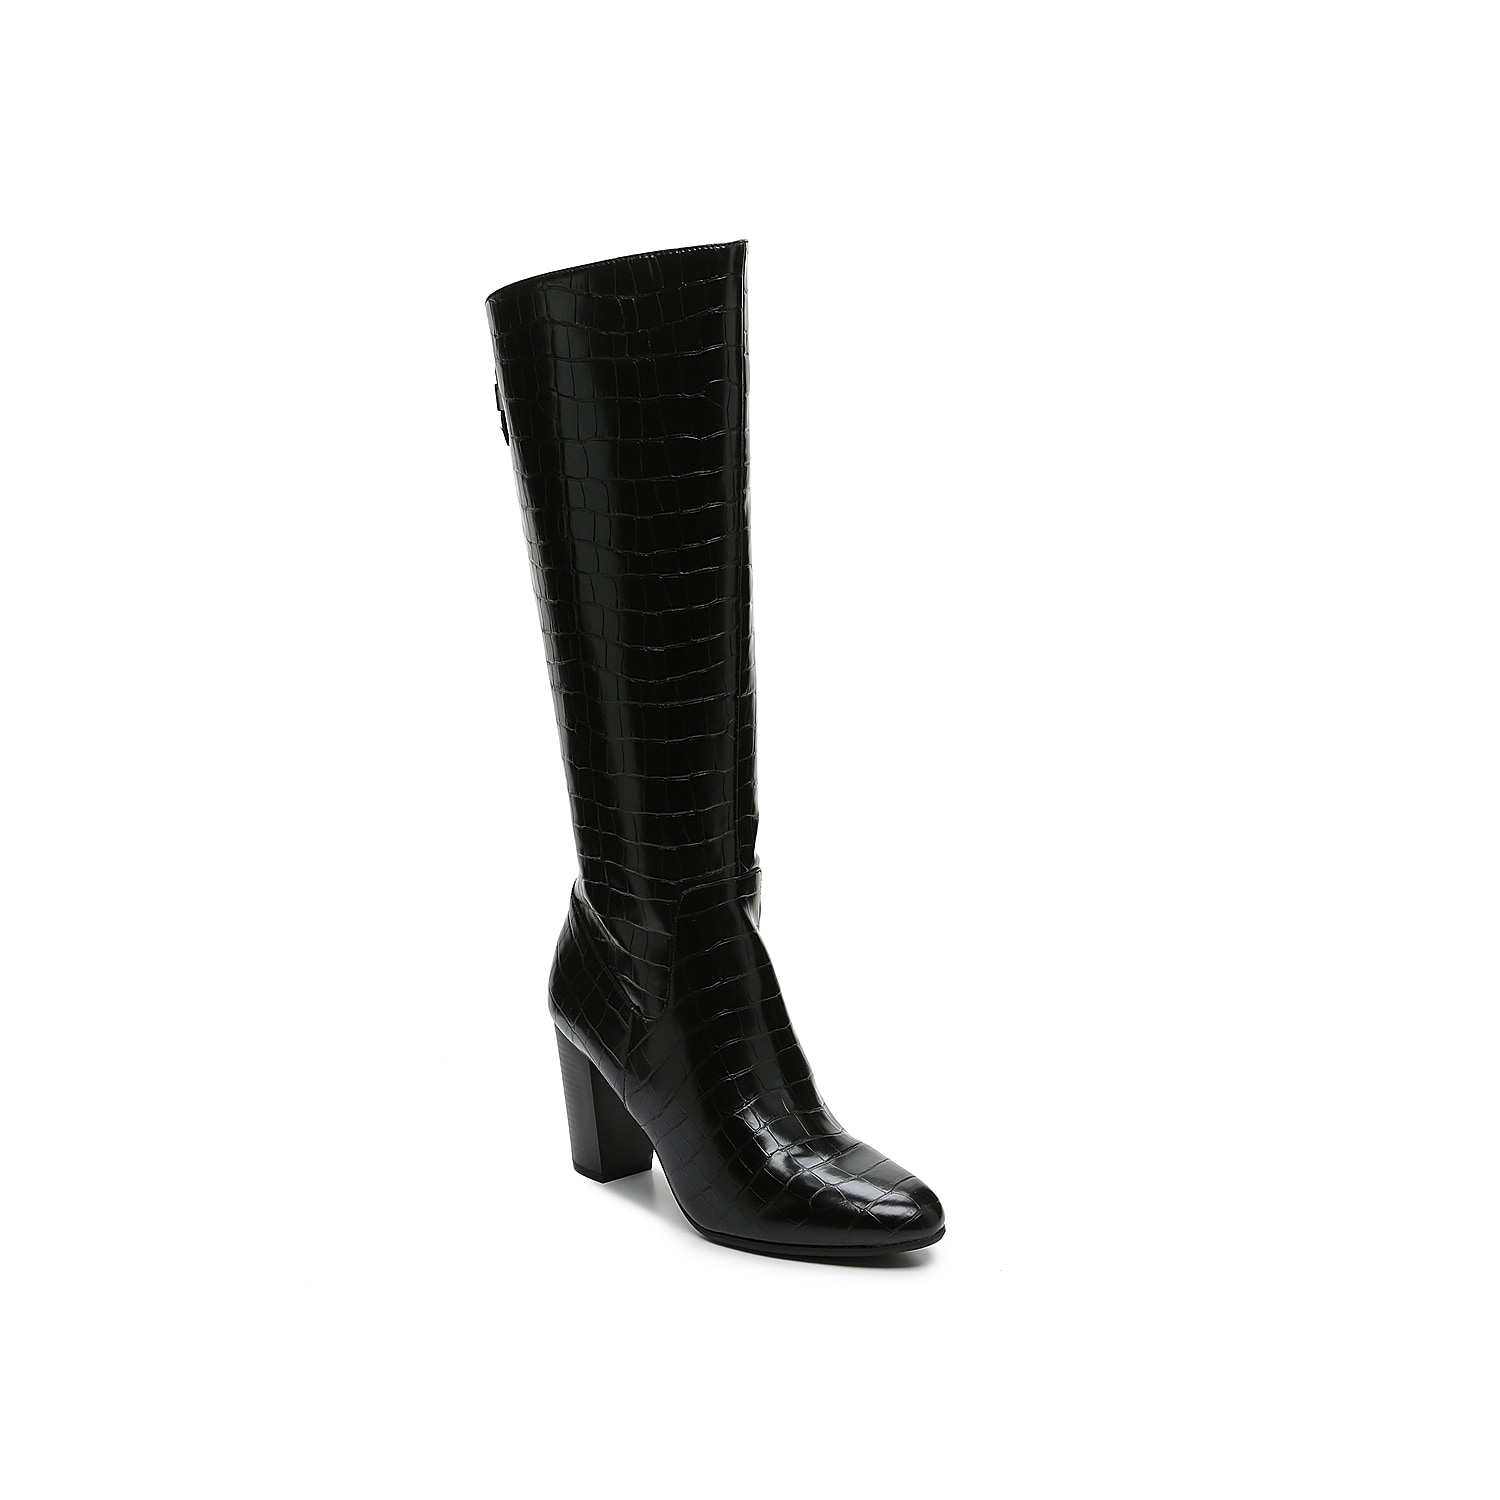 The Nastya boot from Anne Klein displays a simple and frills-free interpretation of the croco print fashion trend. Keep it classic and dress it up or down!